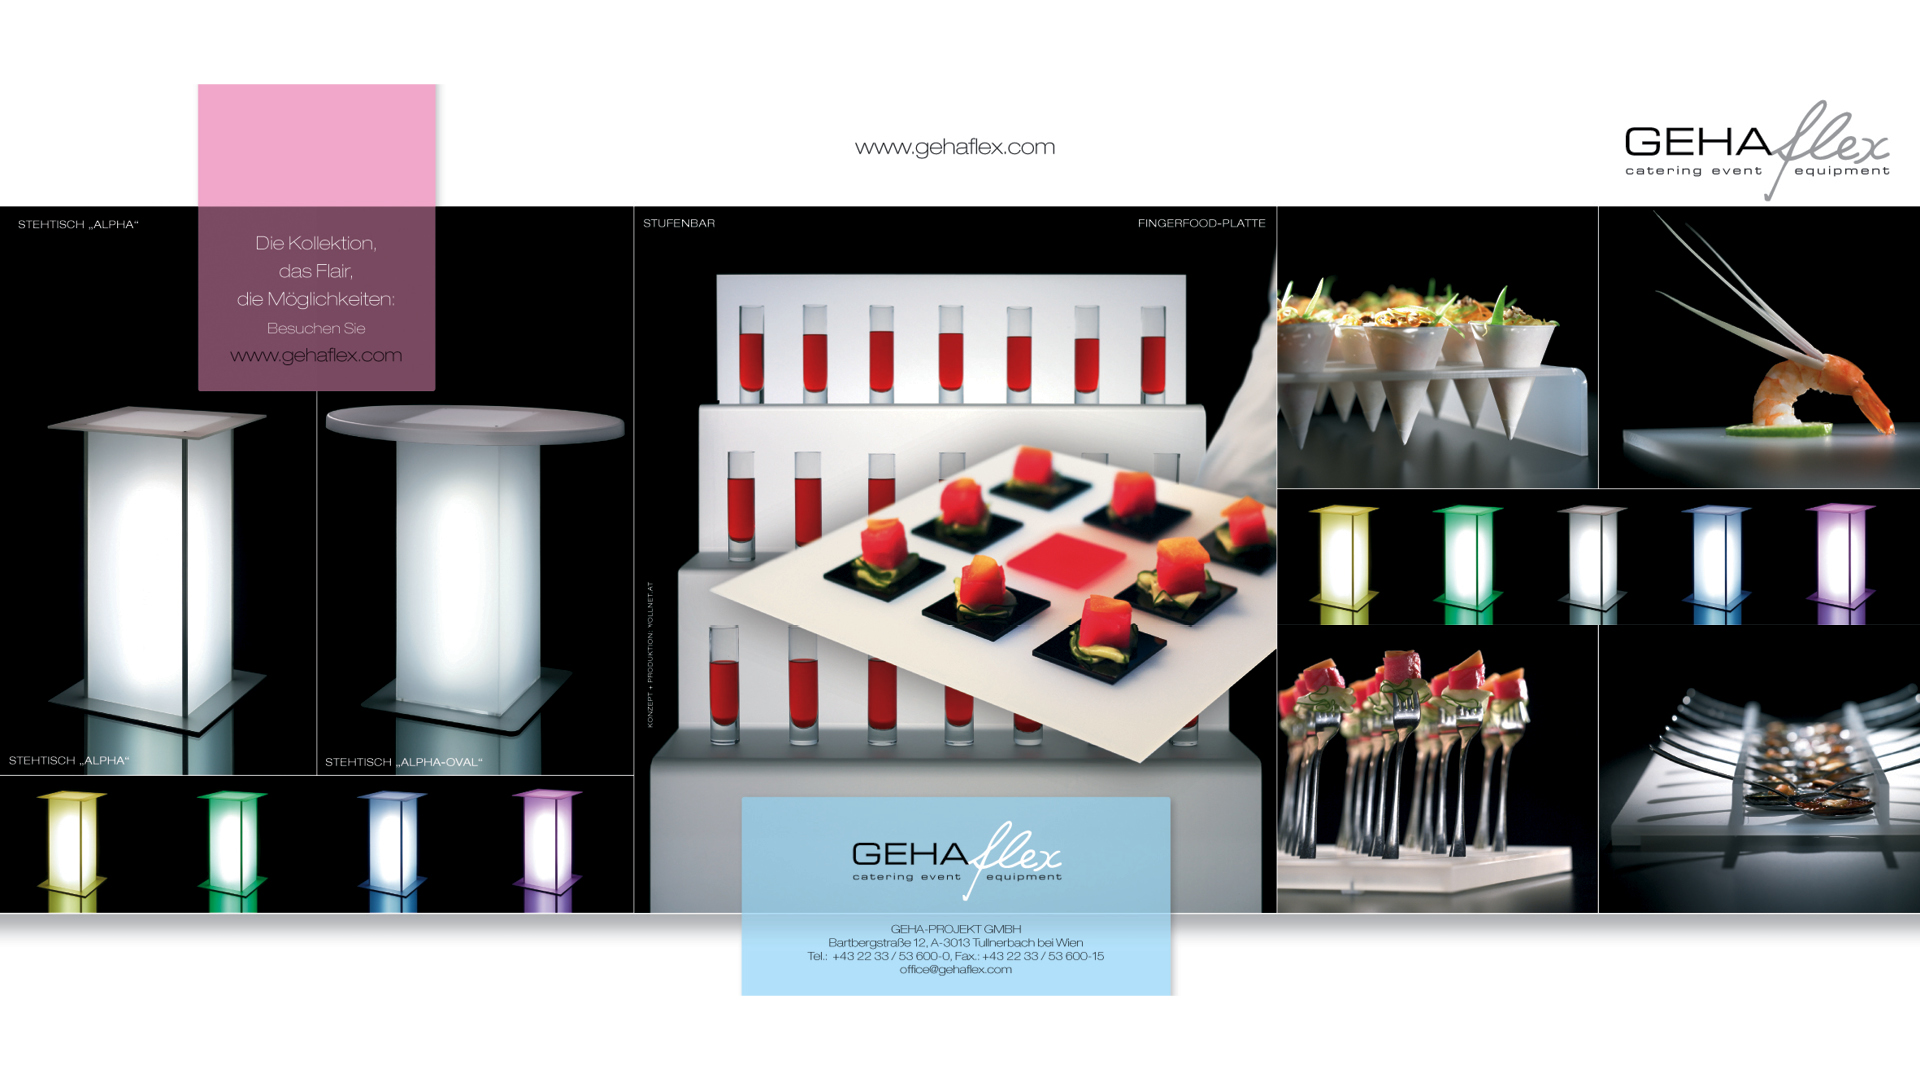 Gehaflex Catering Event Equipment, Designentwicklung, Imagebroschüre, Inserate ...